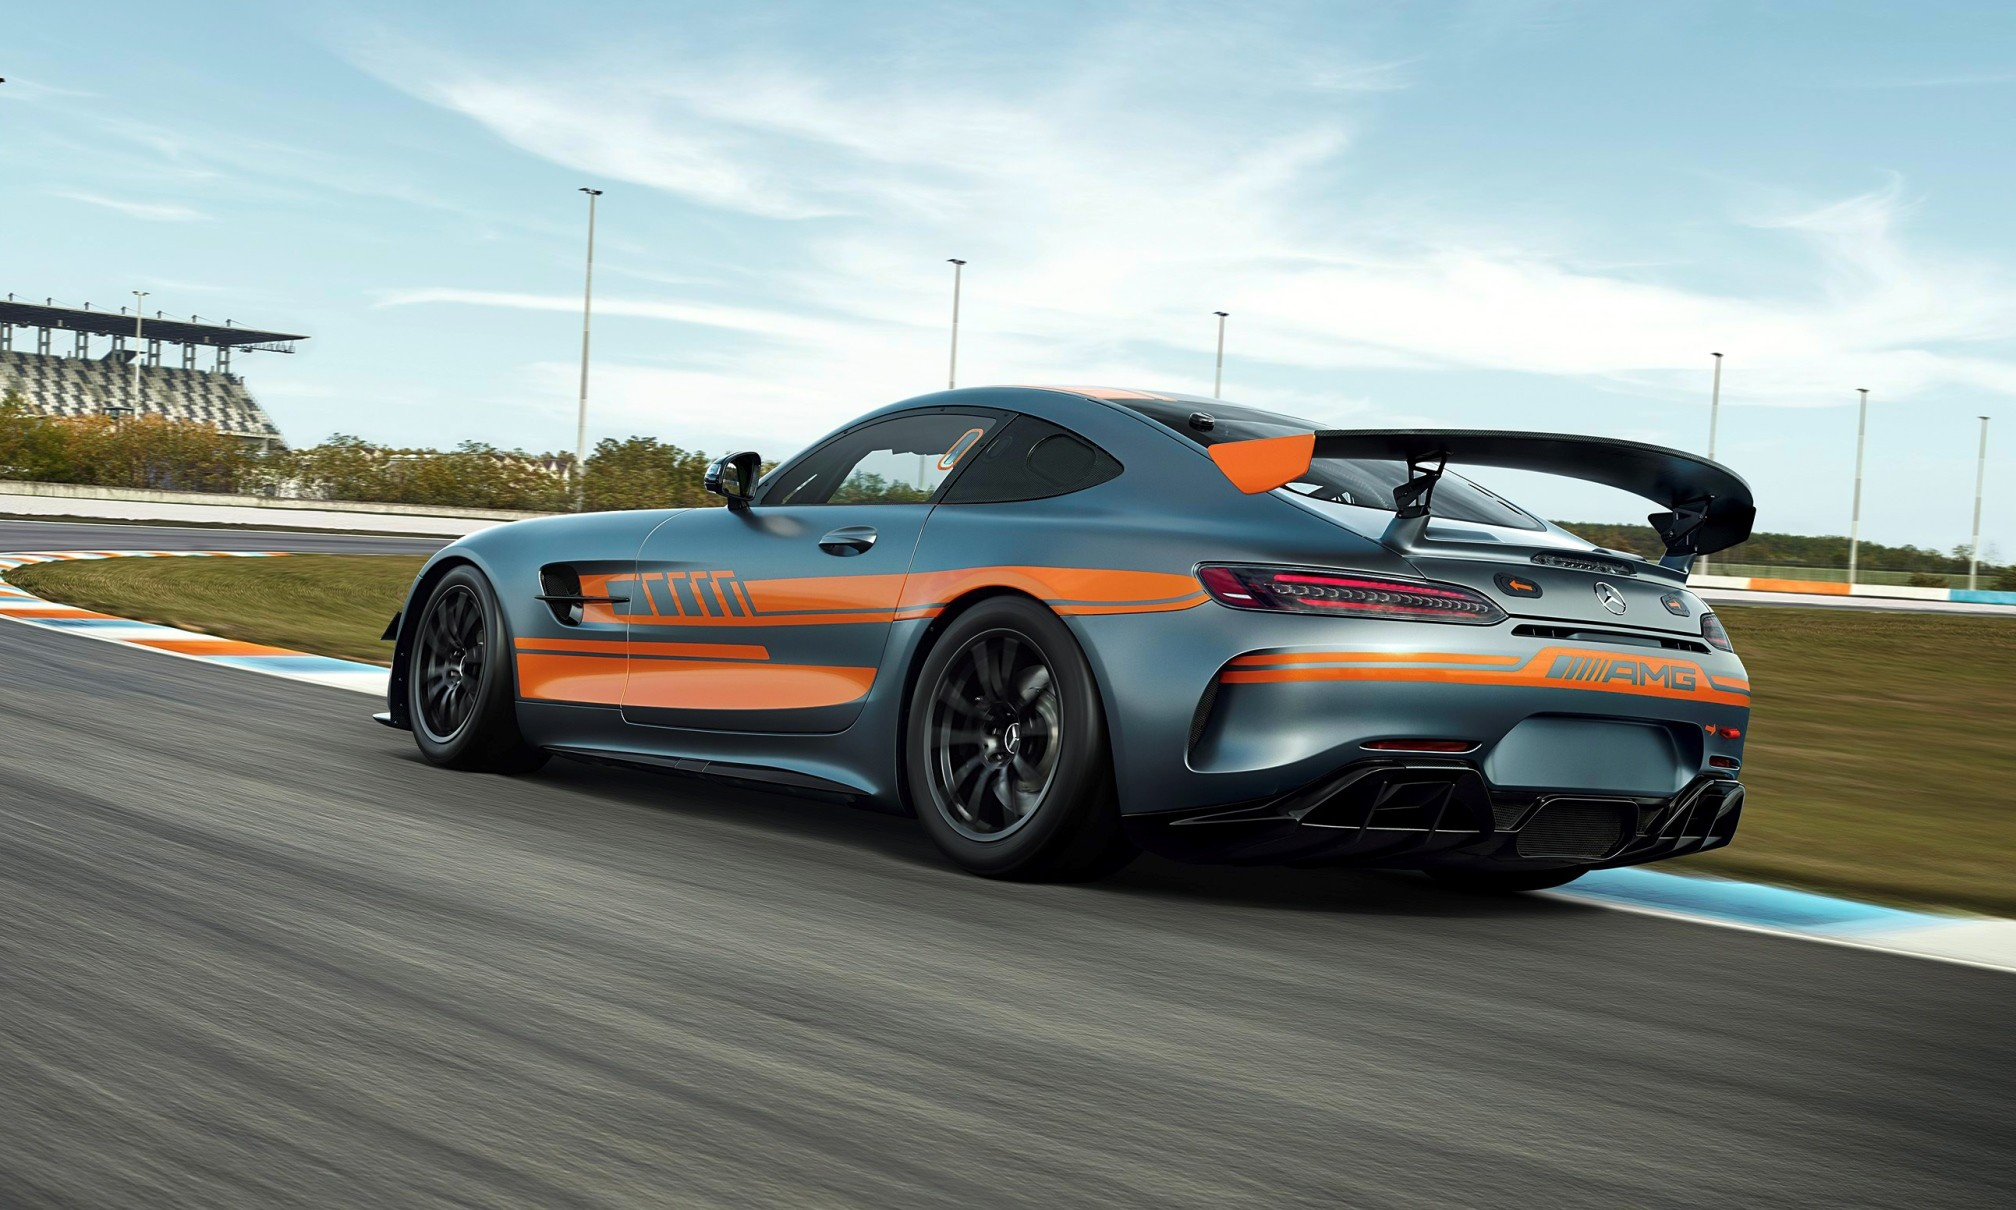 Mercedes-AMG GT4 rear tracking